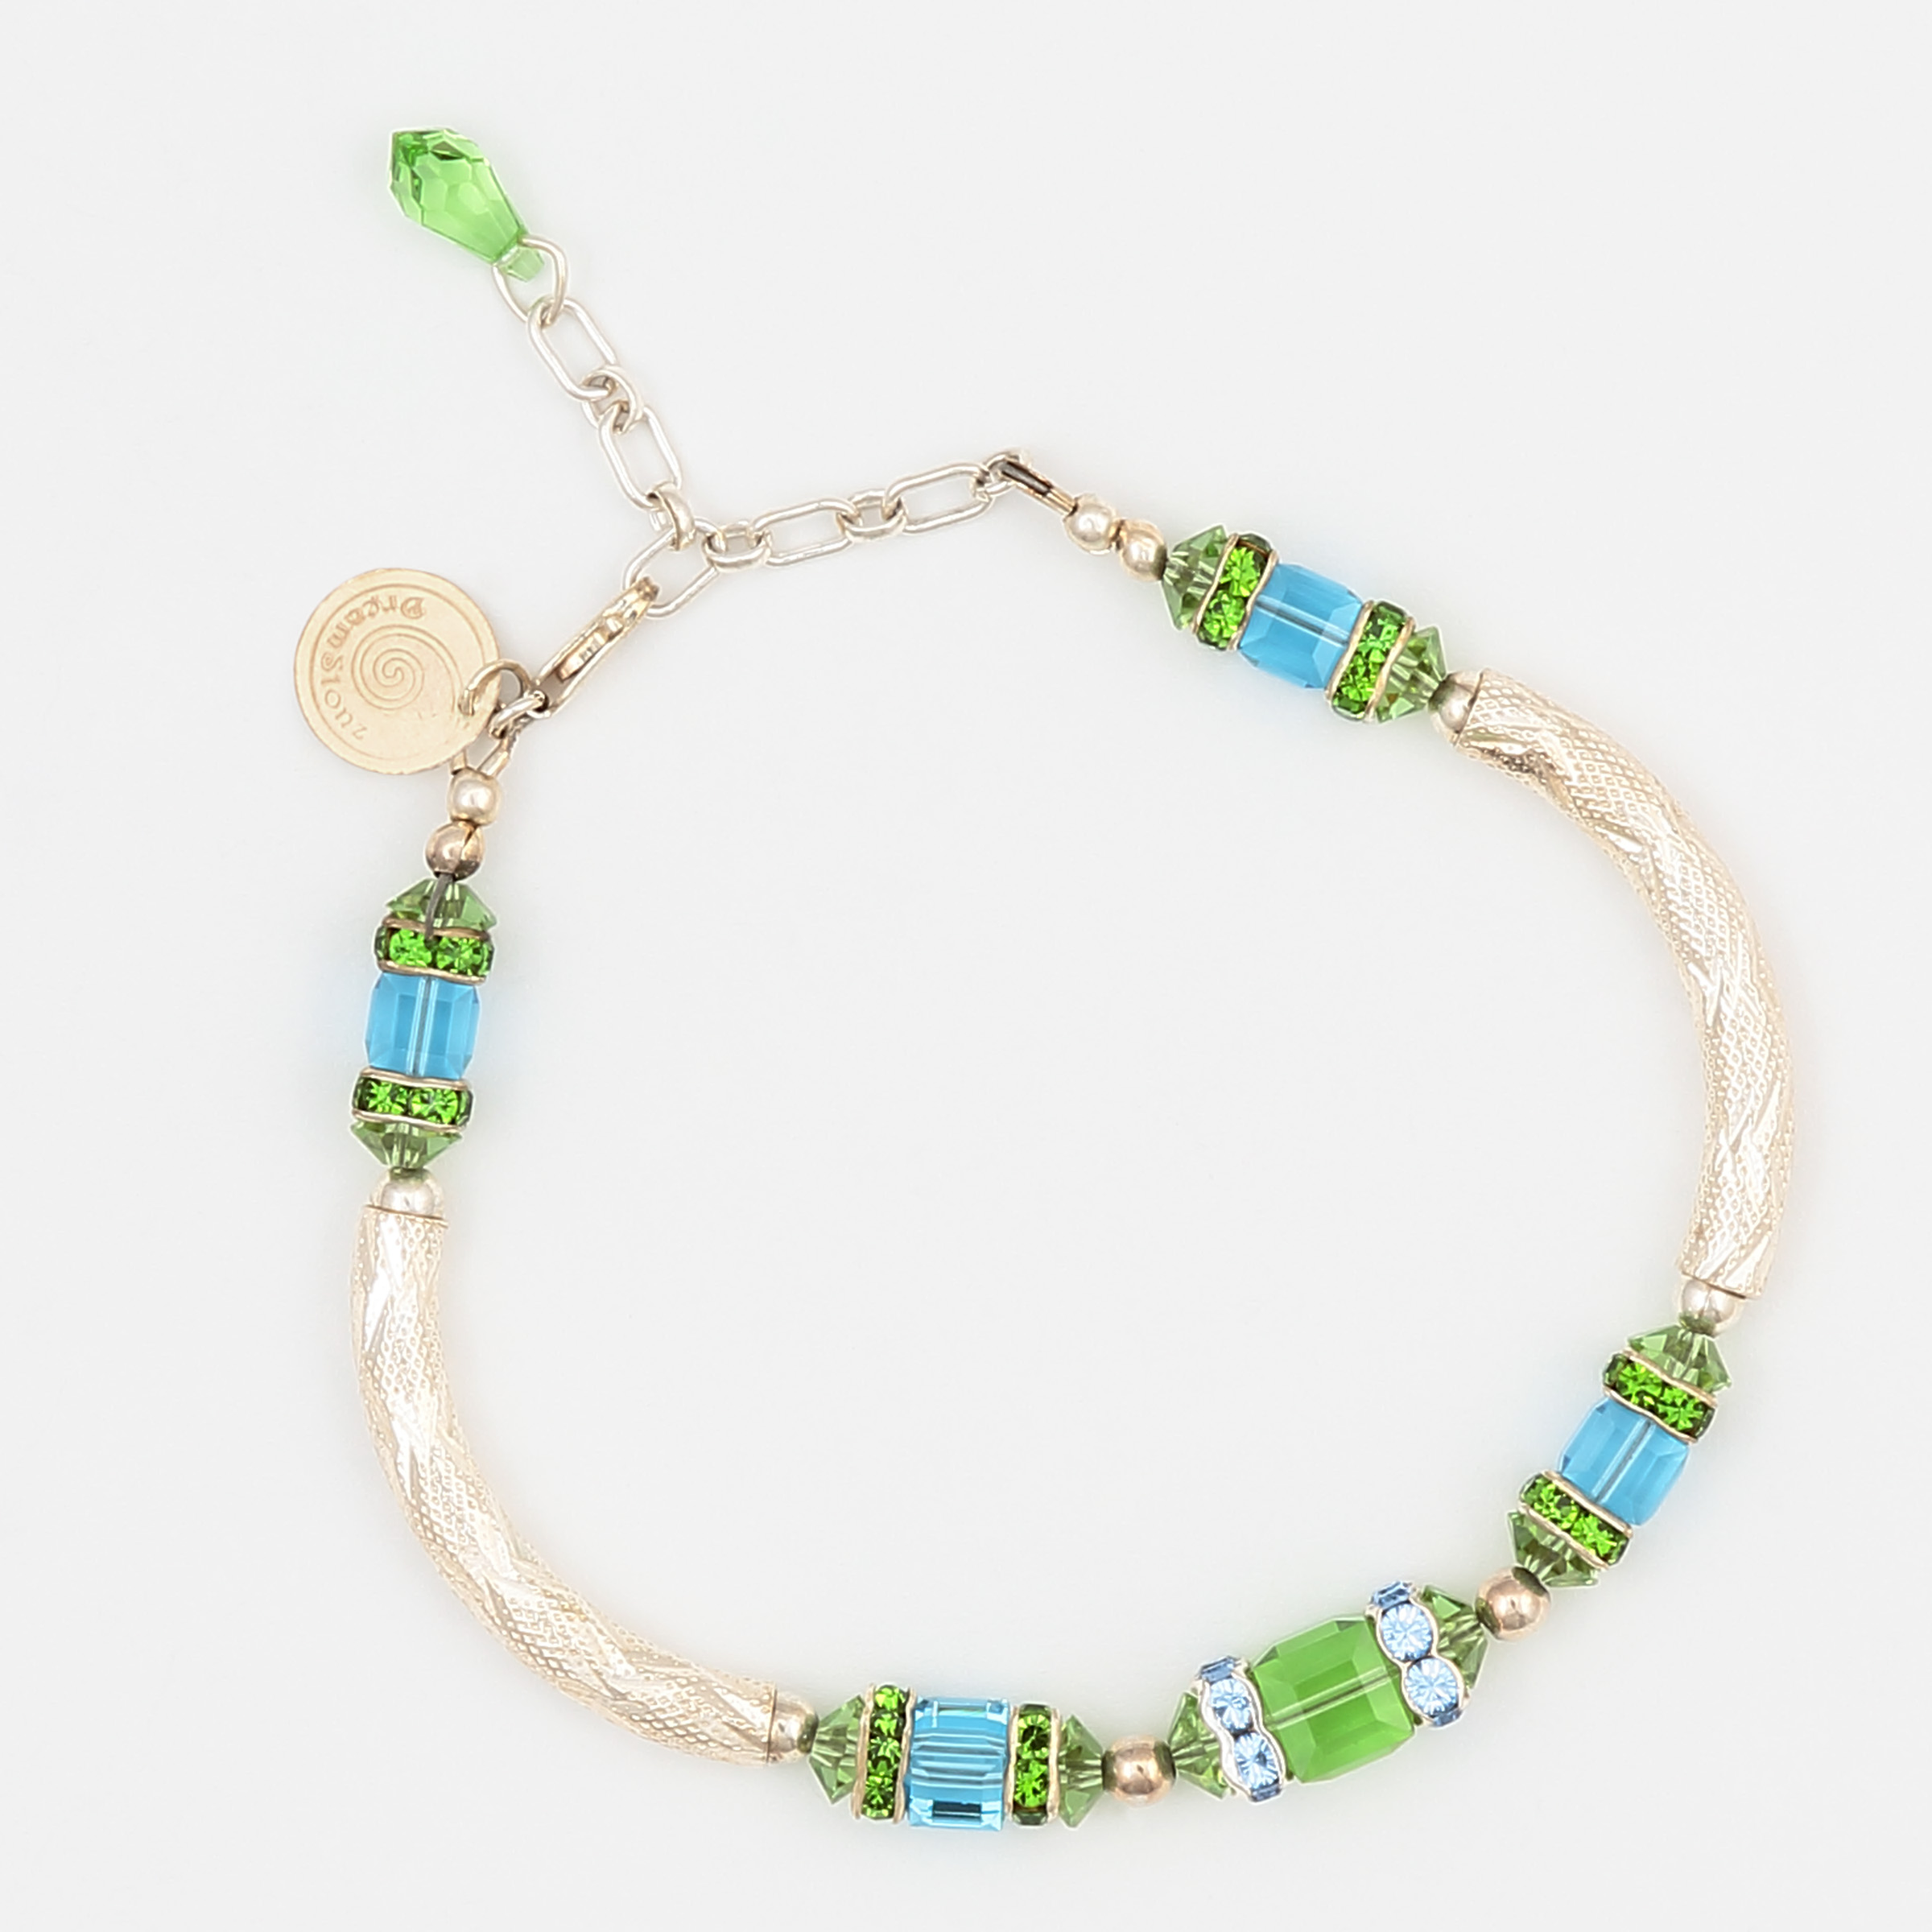 PARENTHESIS IN GREEN BRACELET – sterling silver with Swarovski crystals in blue and green